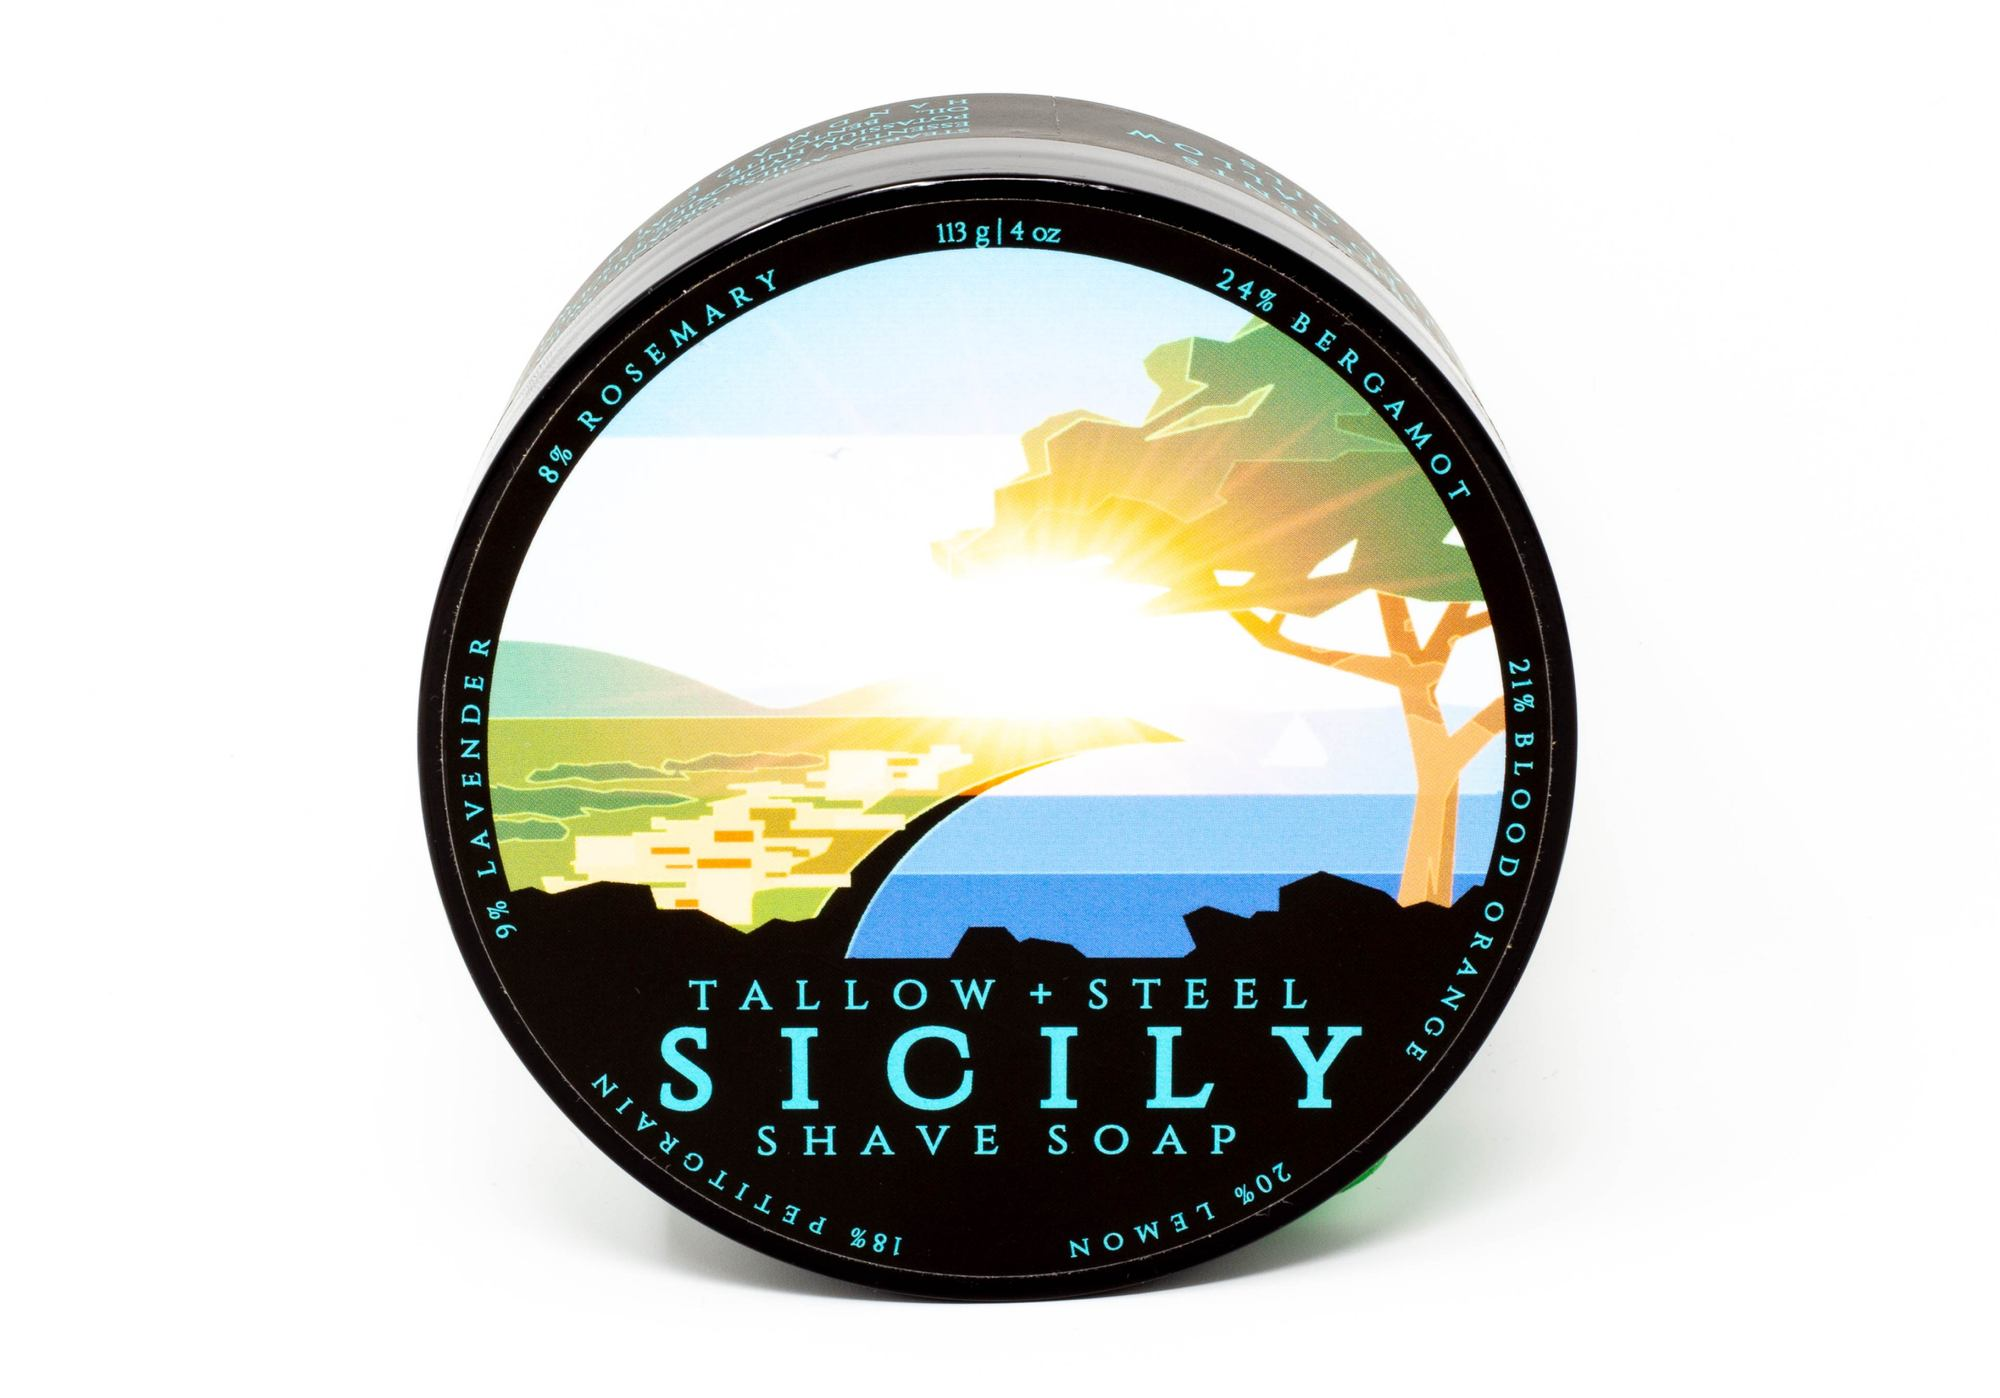 Tallow + Steel - Sicily - Soap image